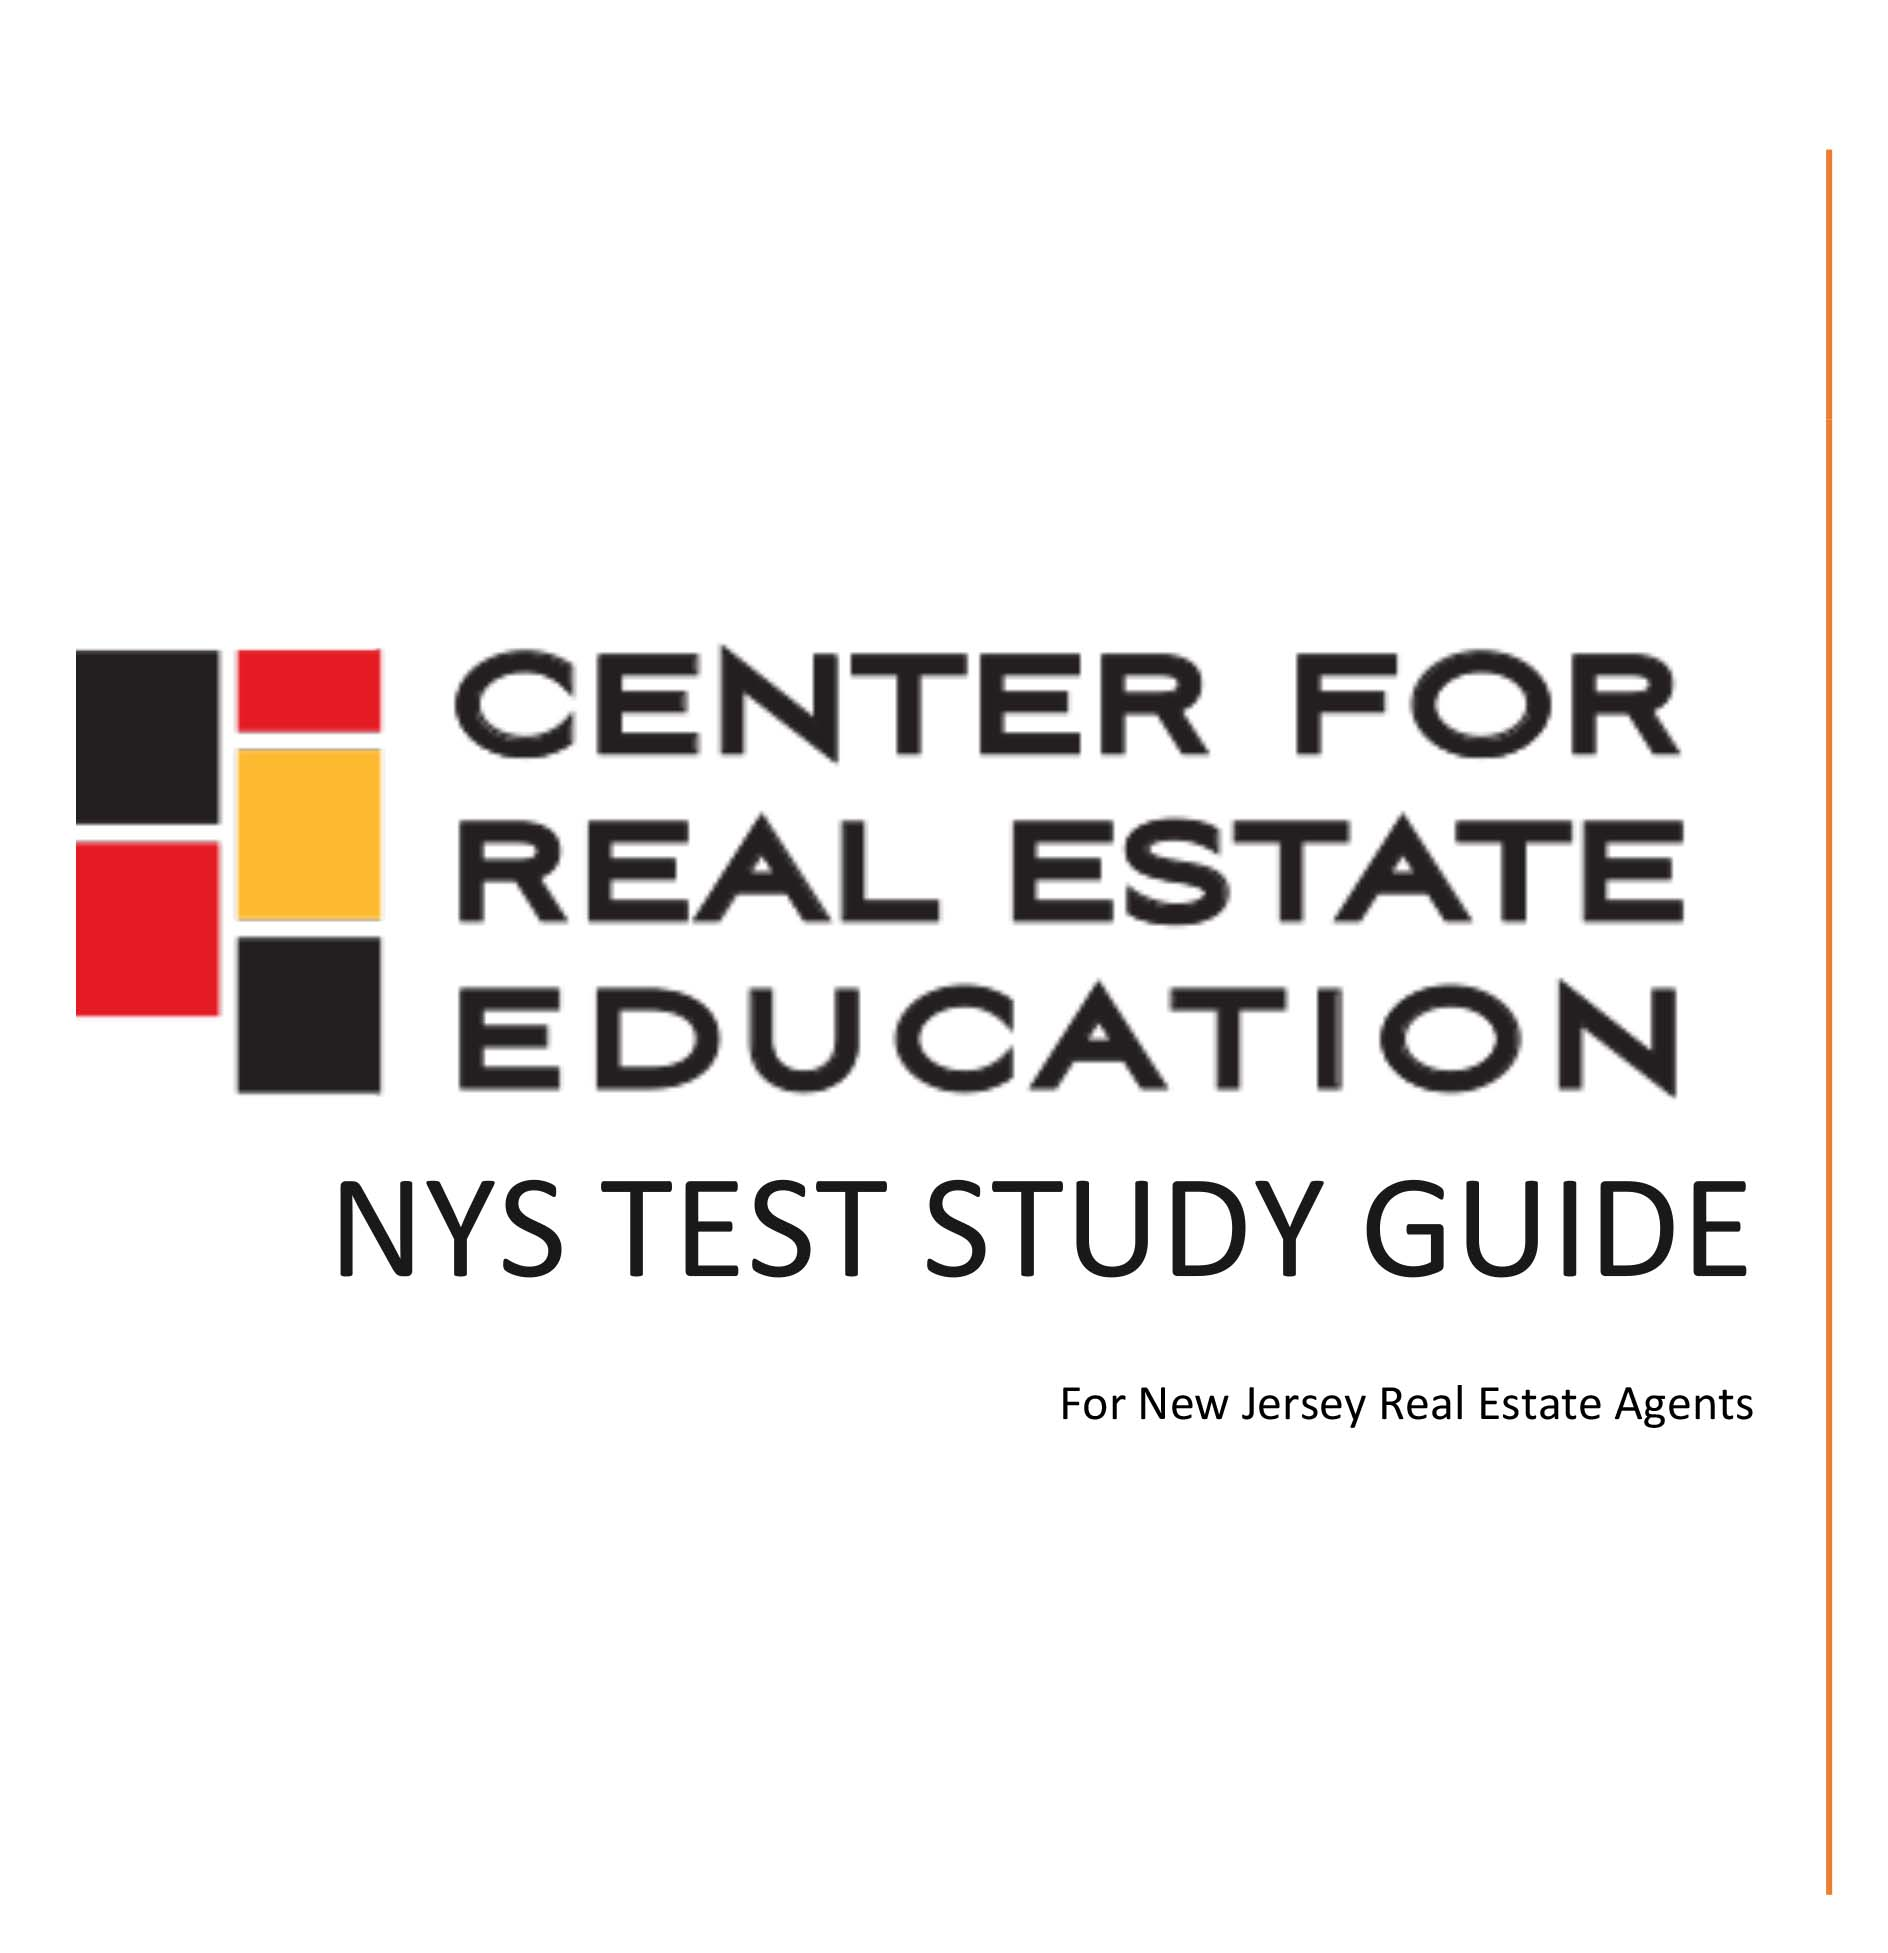 New York License Study Guide For Nj Realtors Book Alexander Anderson Center For Real Estate Education